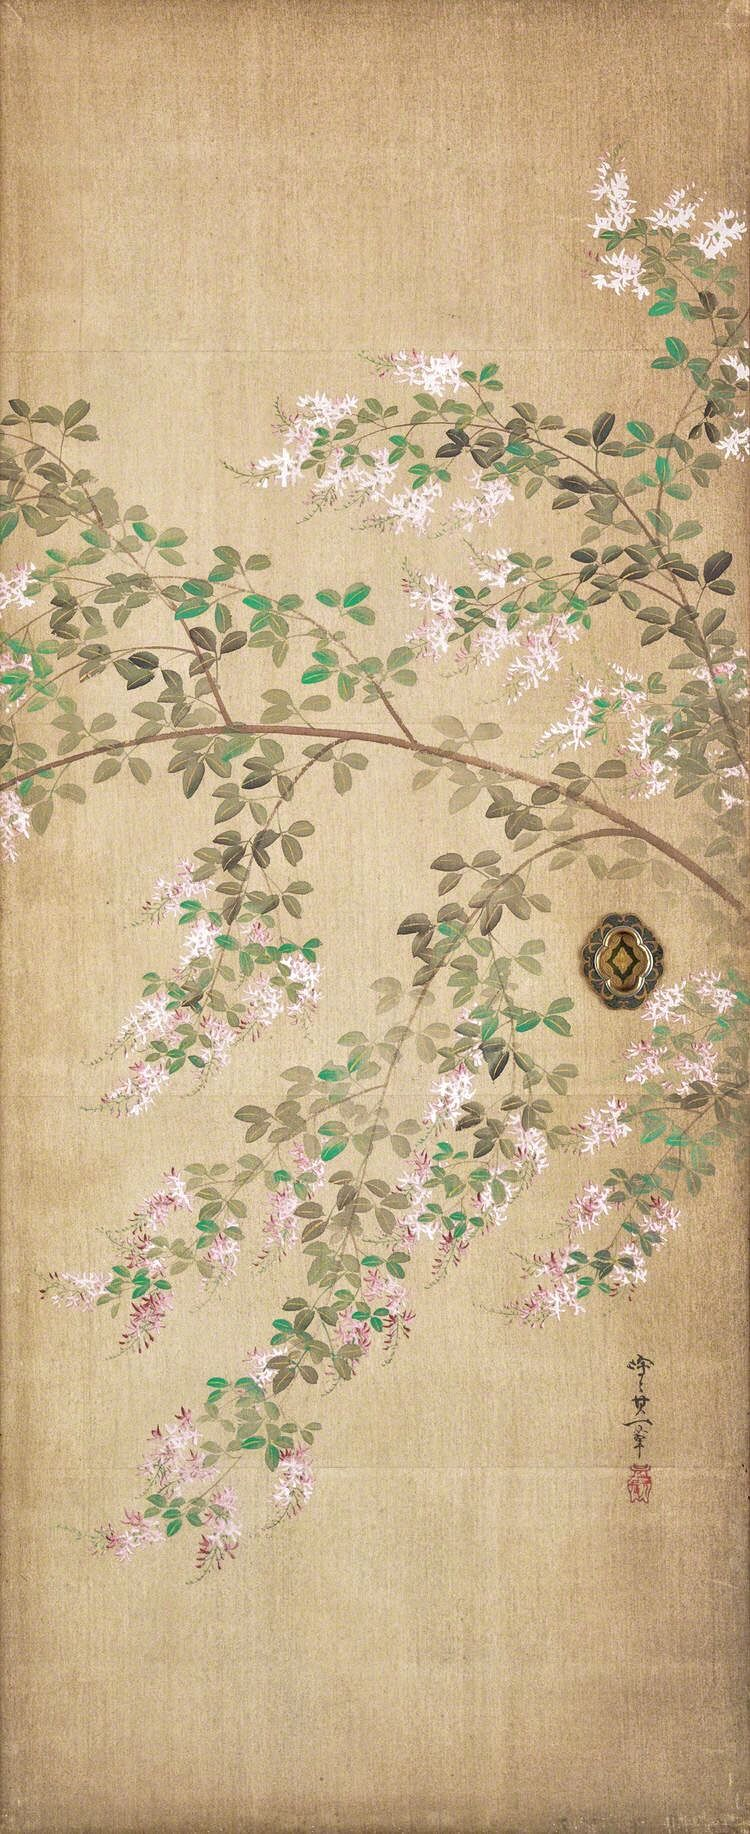 Image result for Japanese paintings and artwork white bush clover